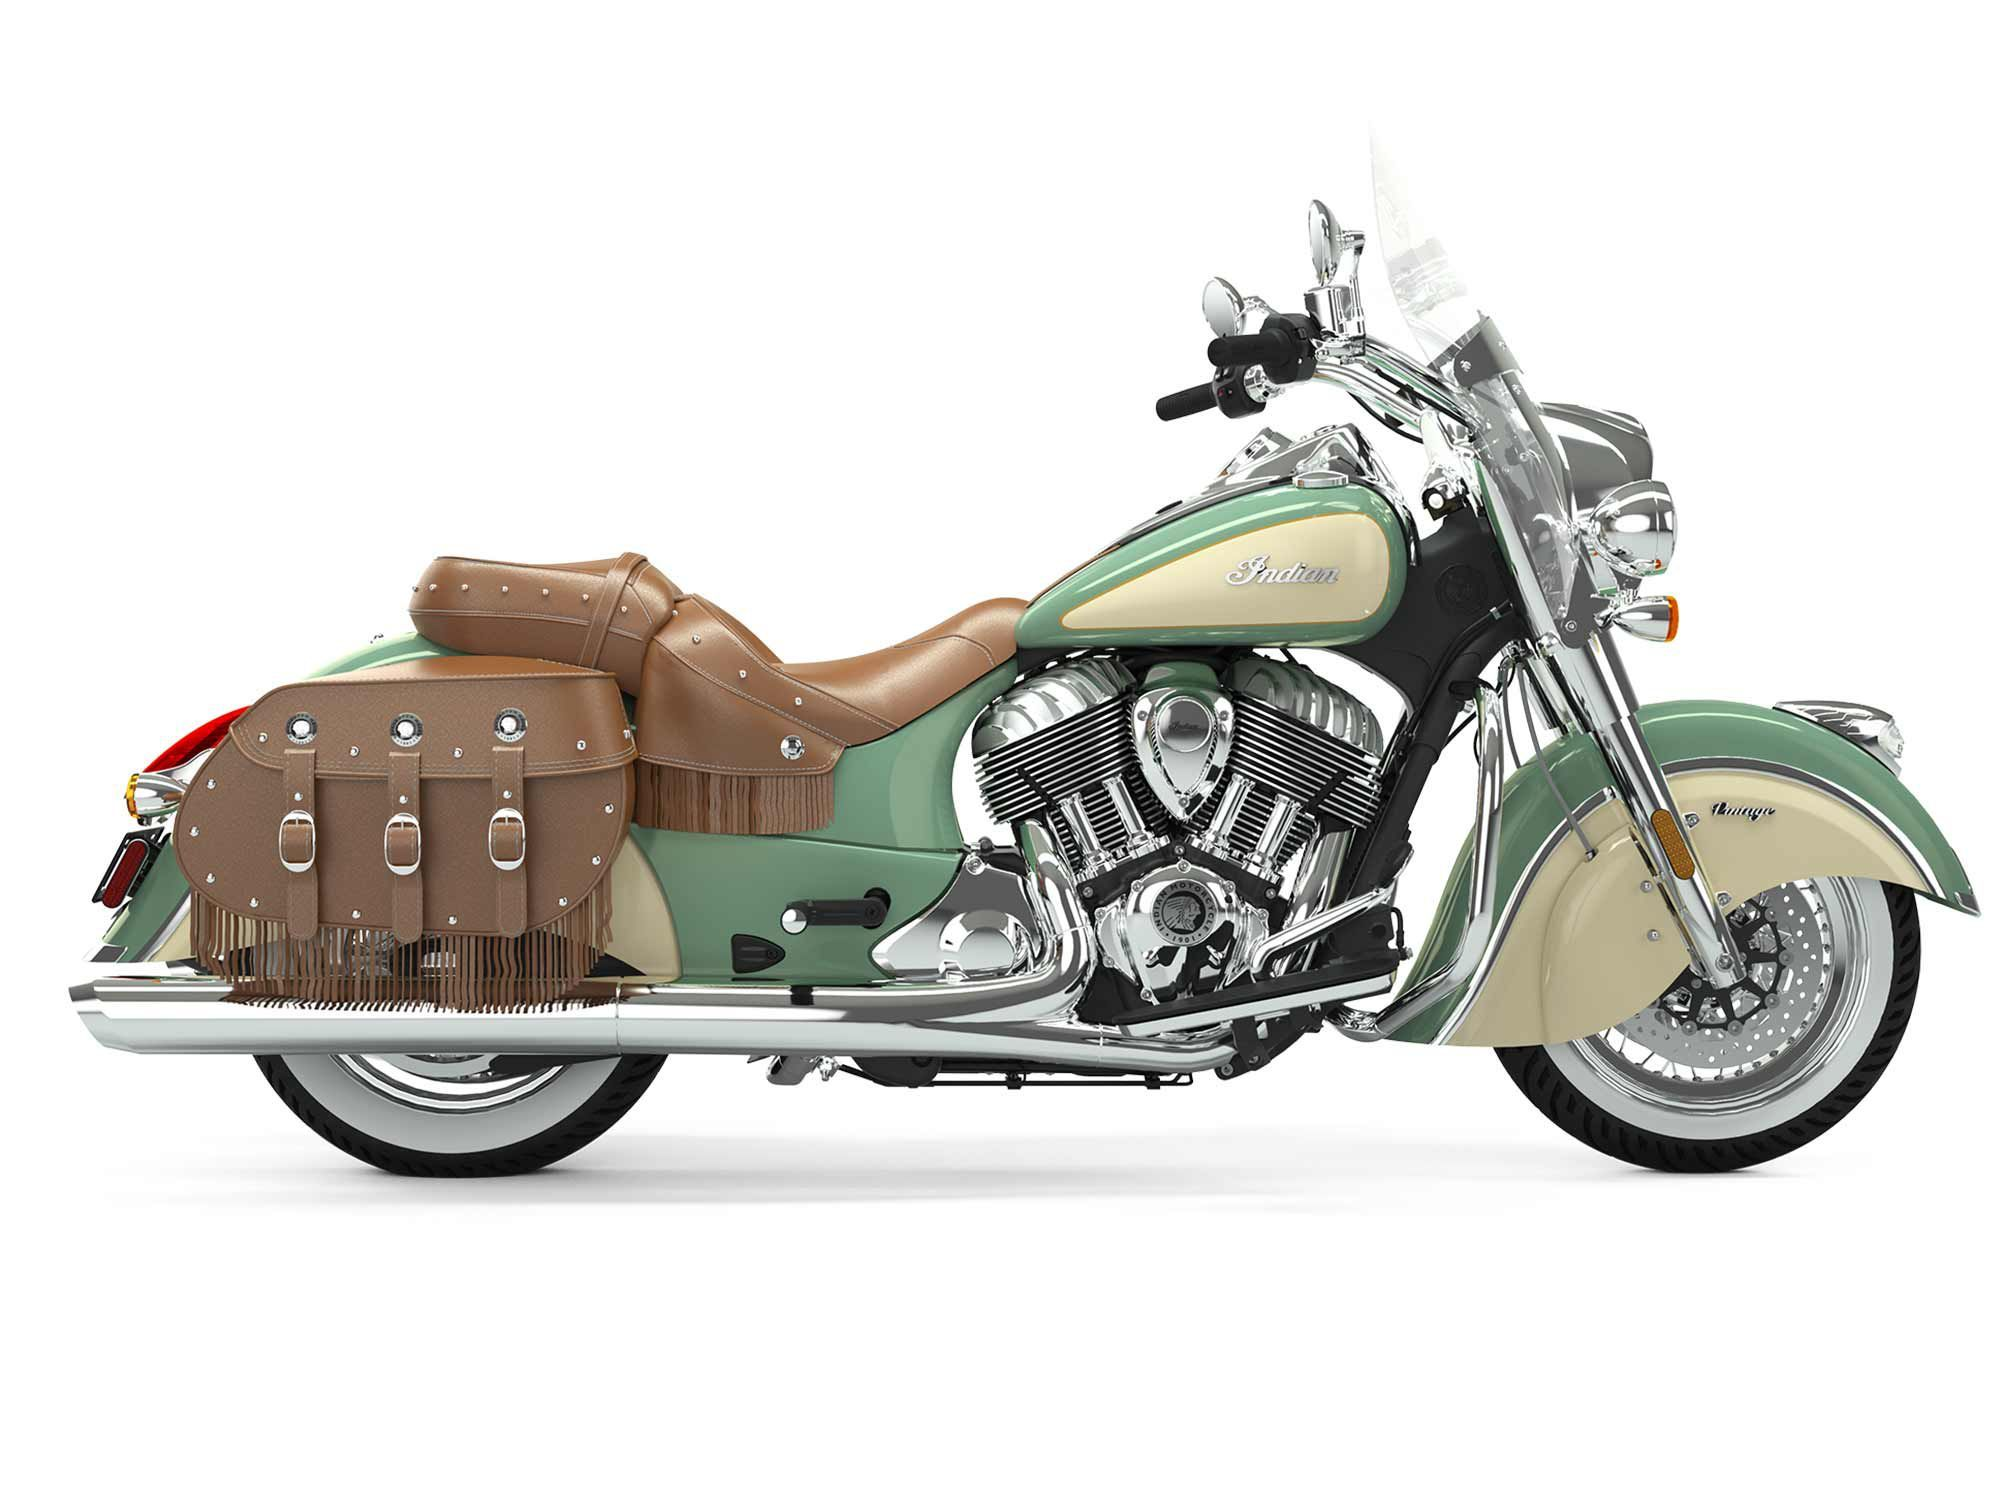 2020 Indian Chief Vintage 2020 Indian Chief Vintage Indian Motorcycle If Youre The Type Who Gr In 2020 Vintage Indian Motorcycles Indian Motorcycle Indian Chief